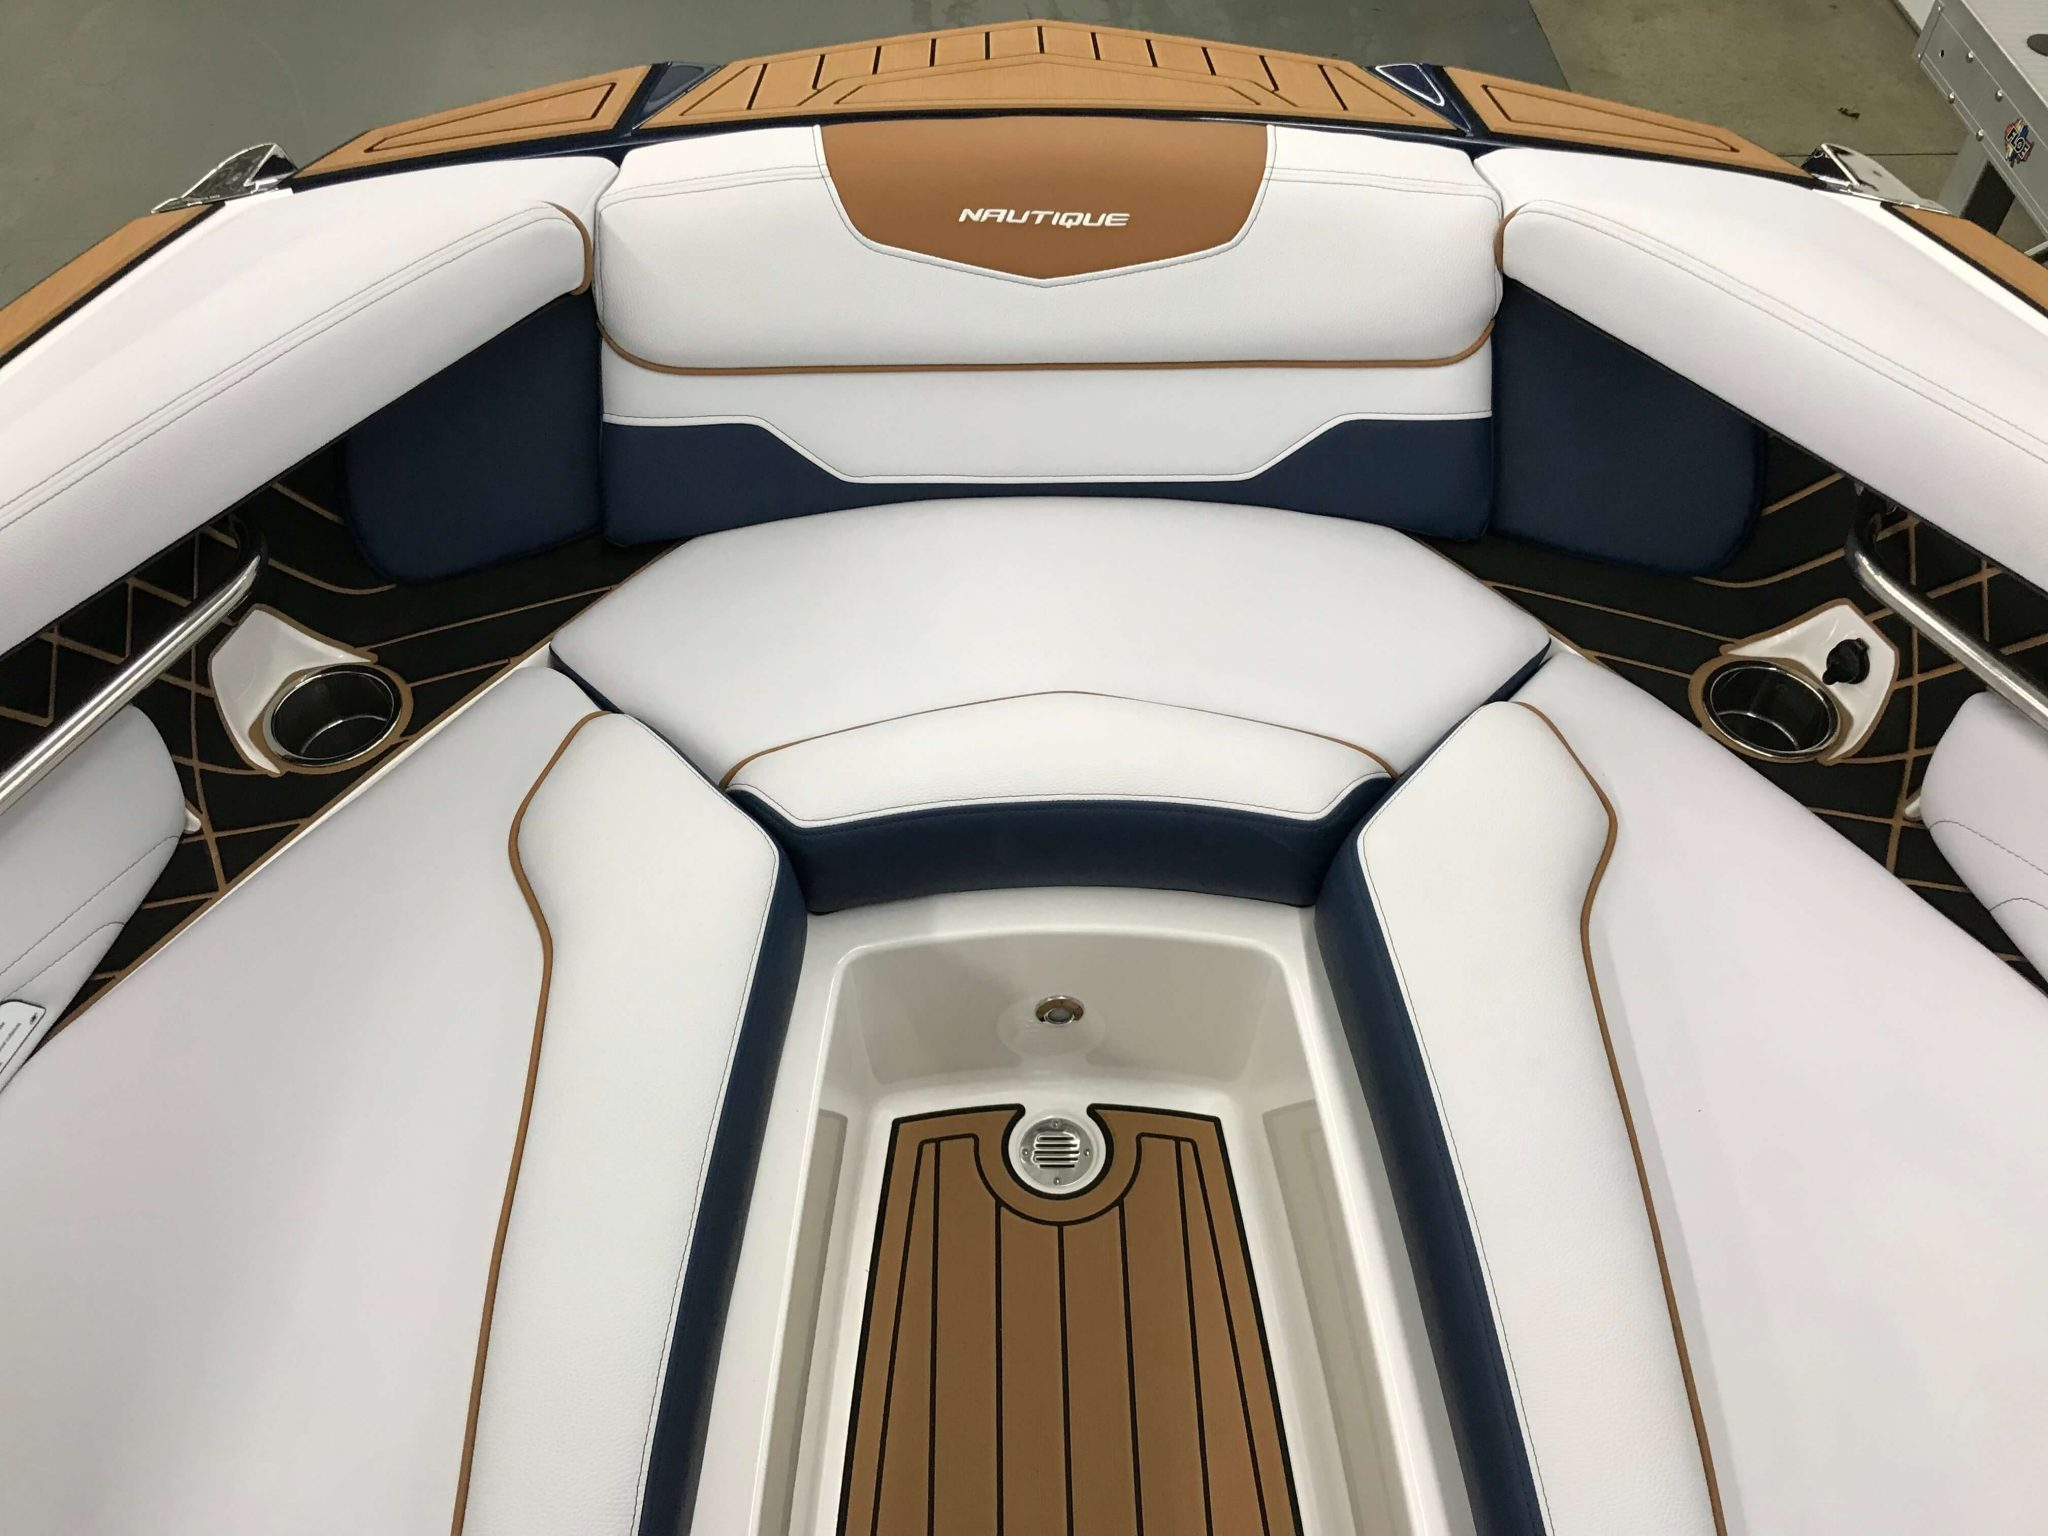 2019 Nautique GS22 Bow Seating 4